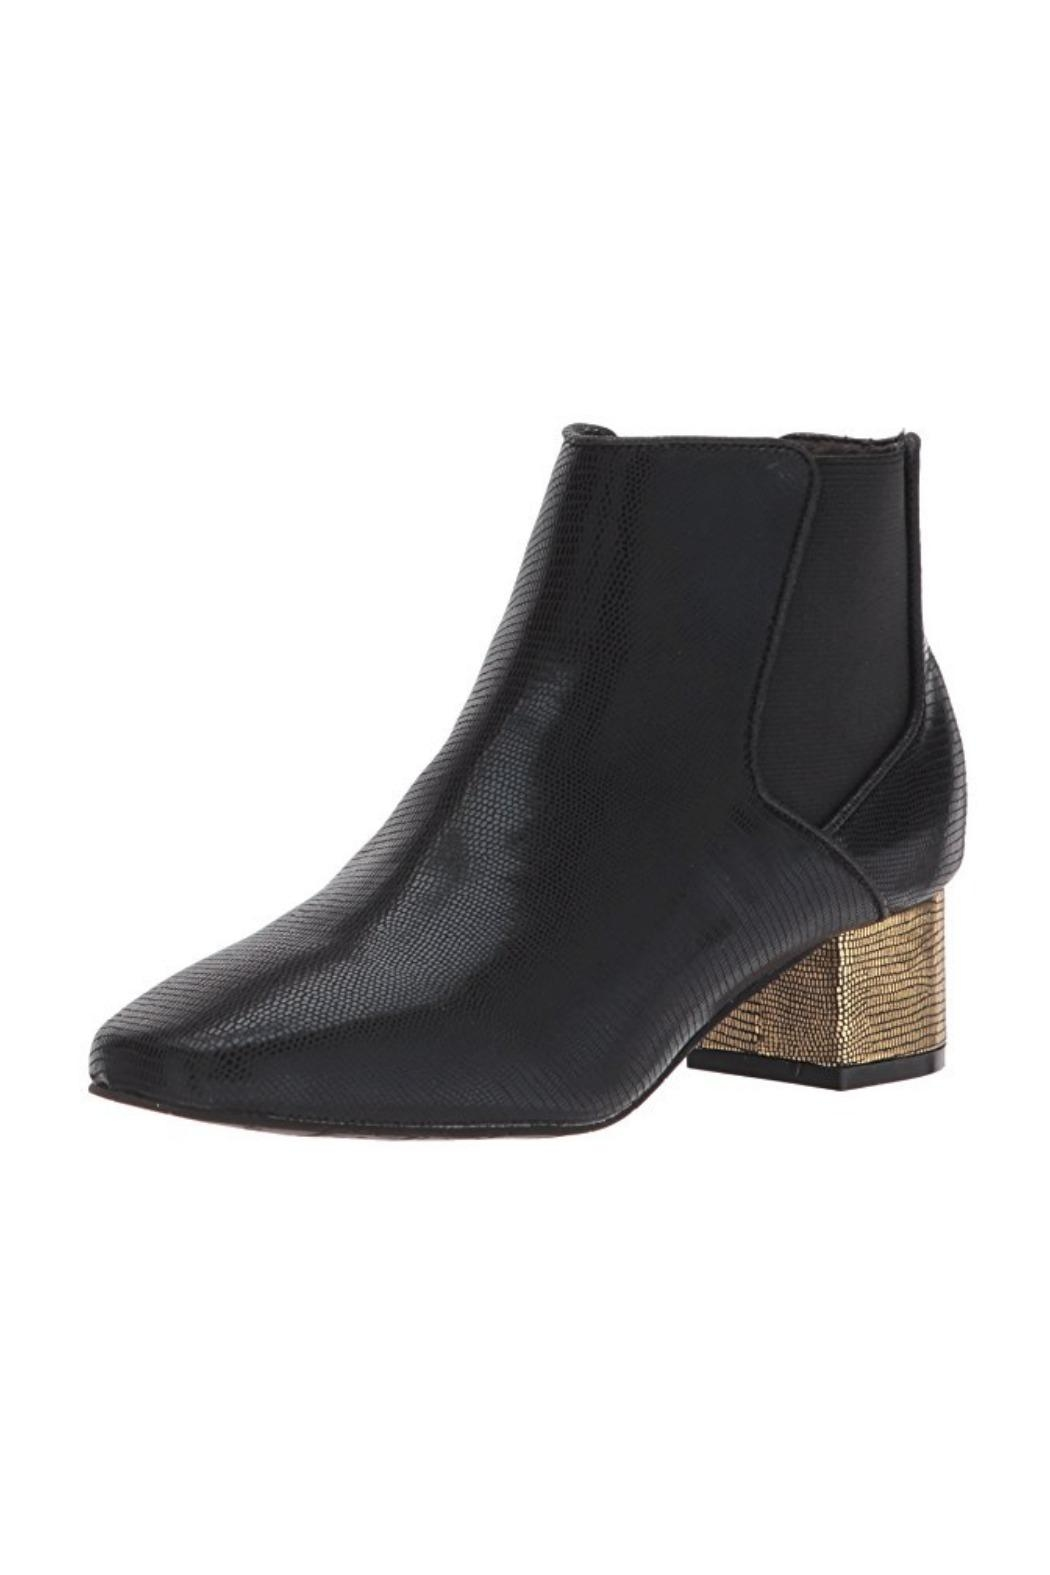 BC Footwear Crisp Bootie - Front Cropped Image